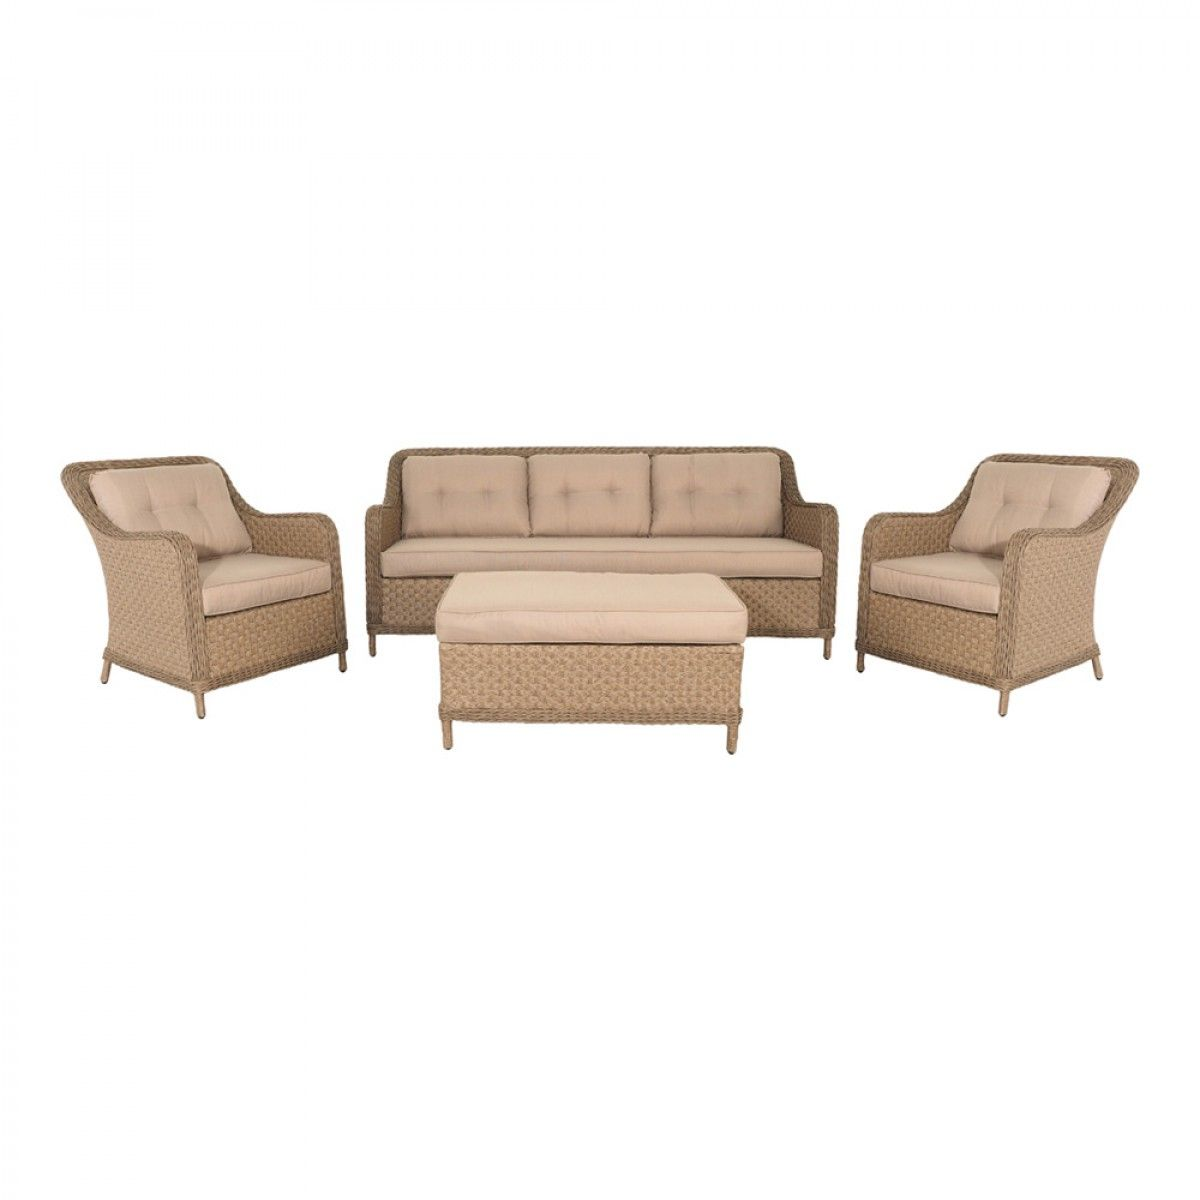 Harlow Two Sofa Set 4 Piece Clearance Sofa Set Outdoor